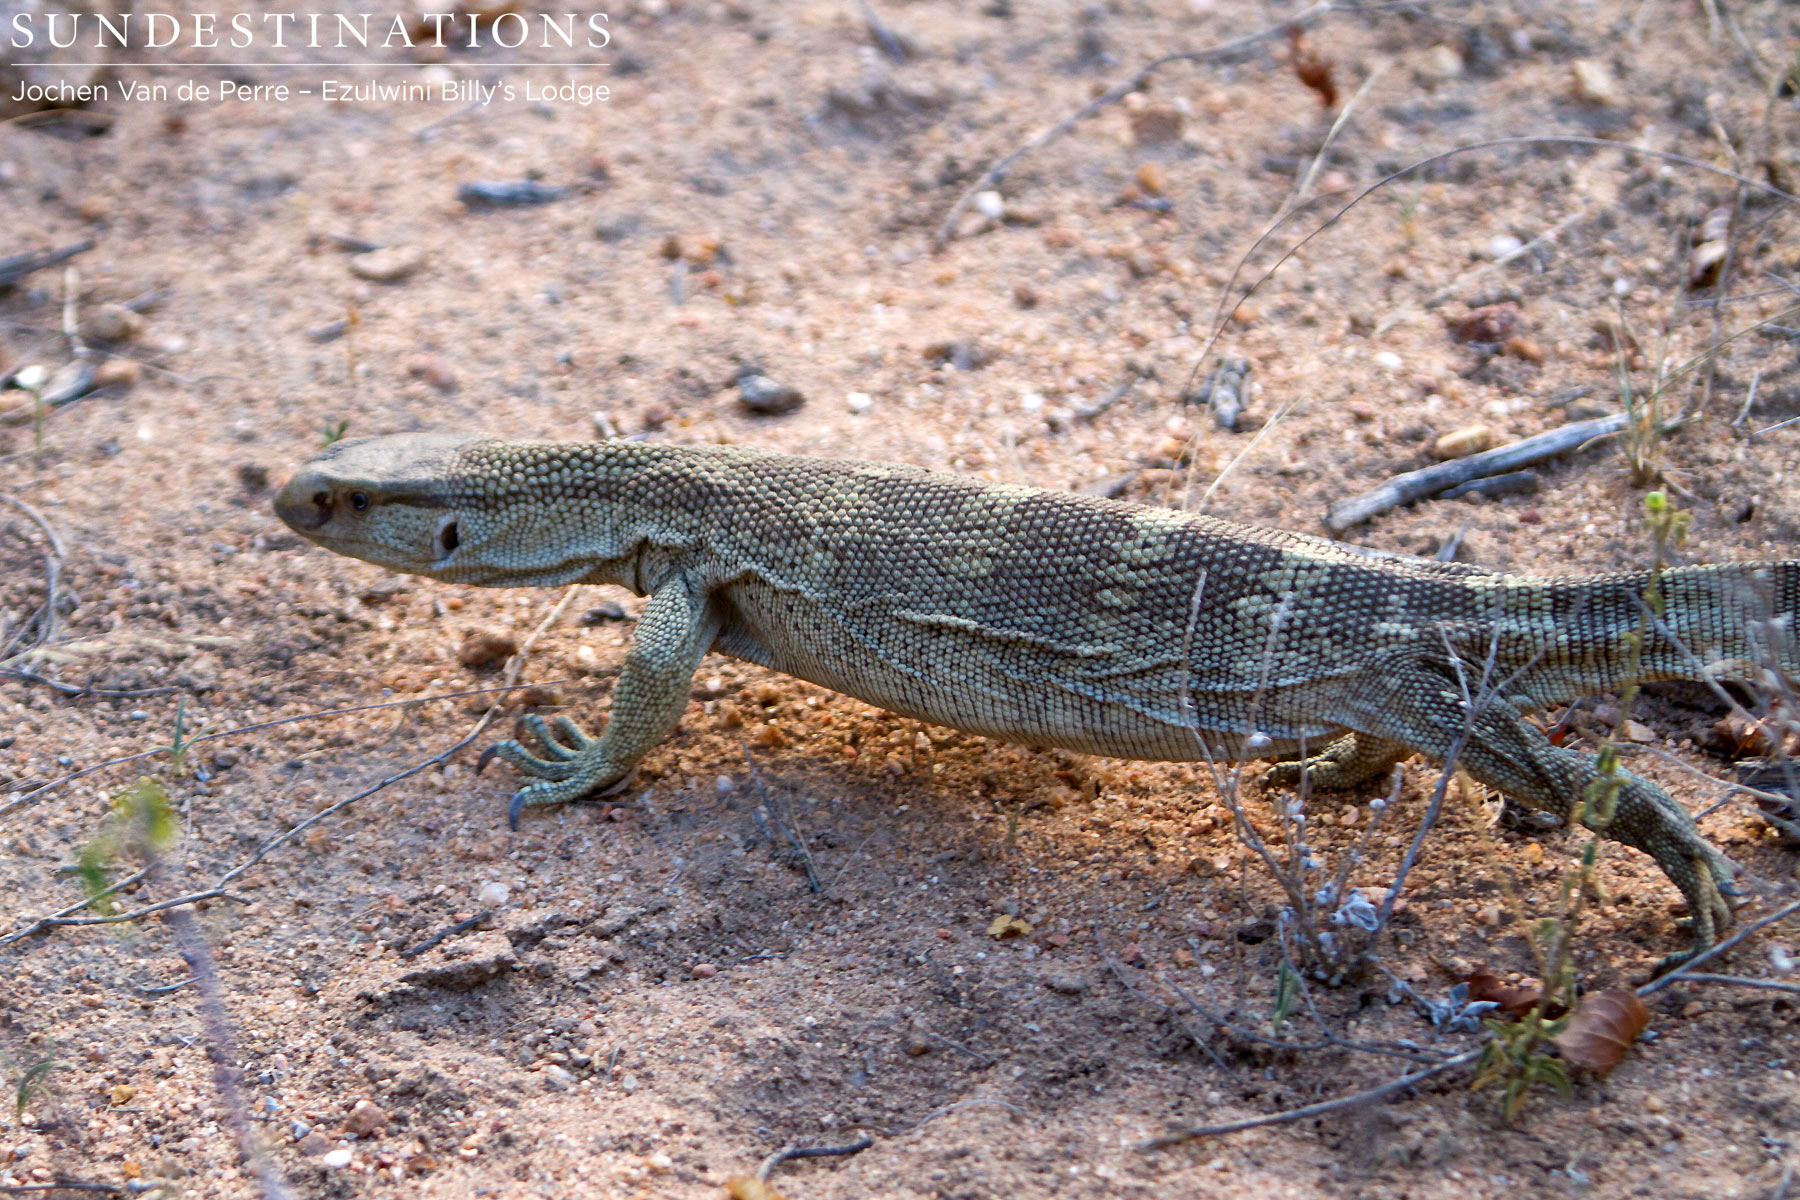 Slippery, Slithery, and Scaly: Reptiles of Balule